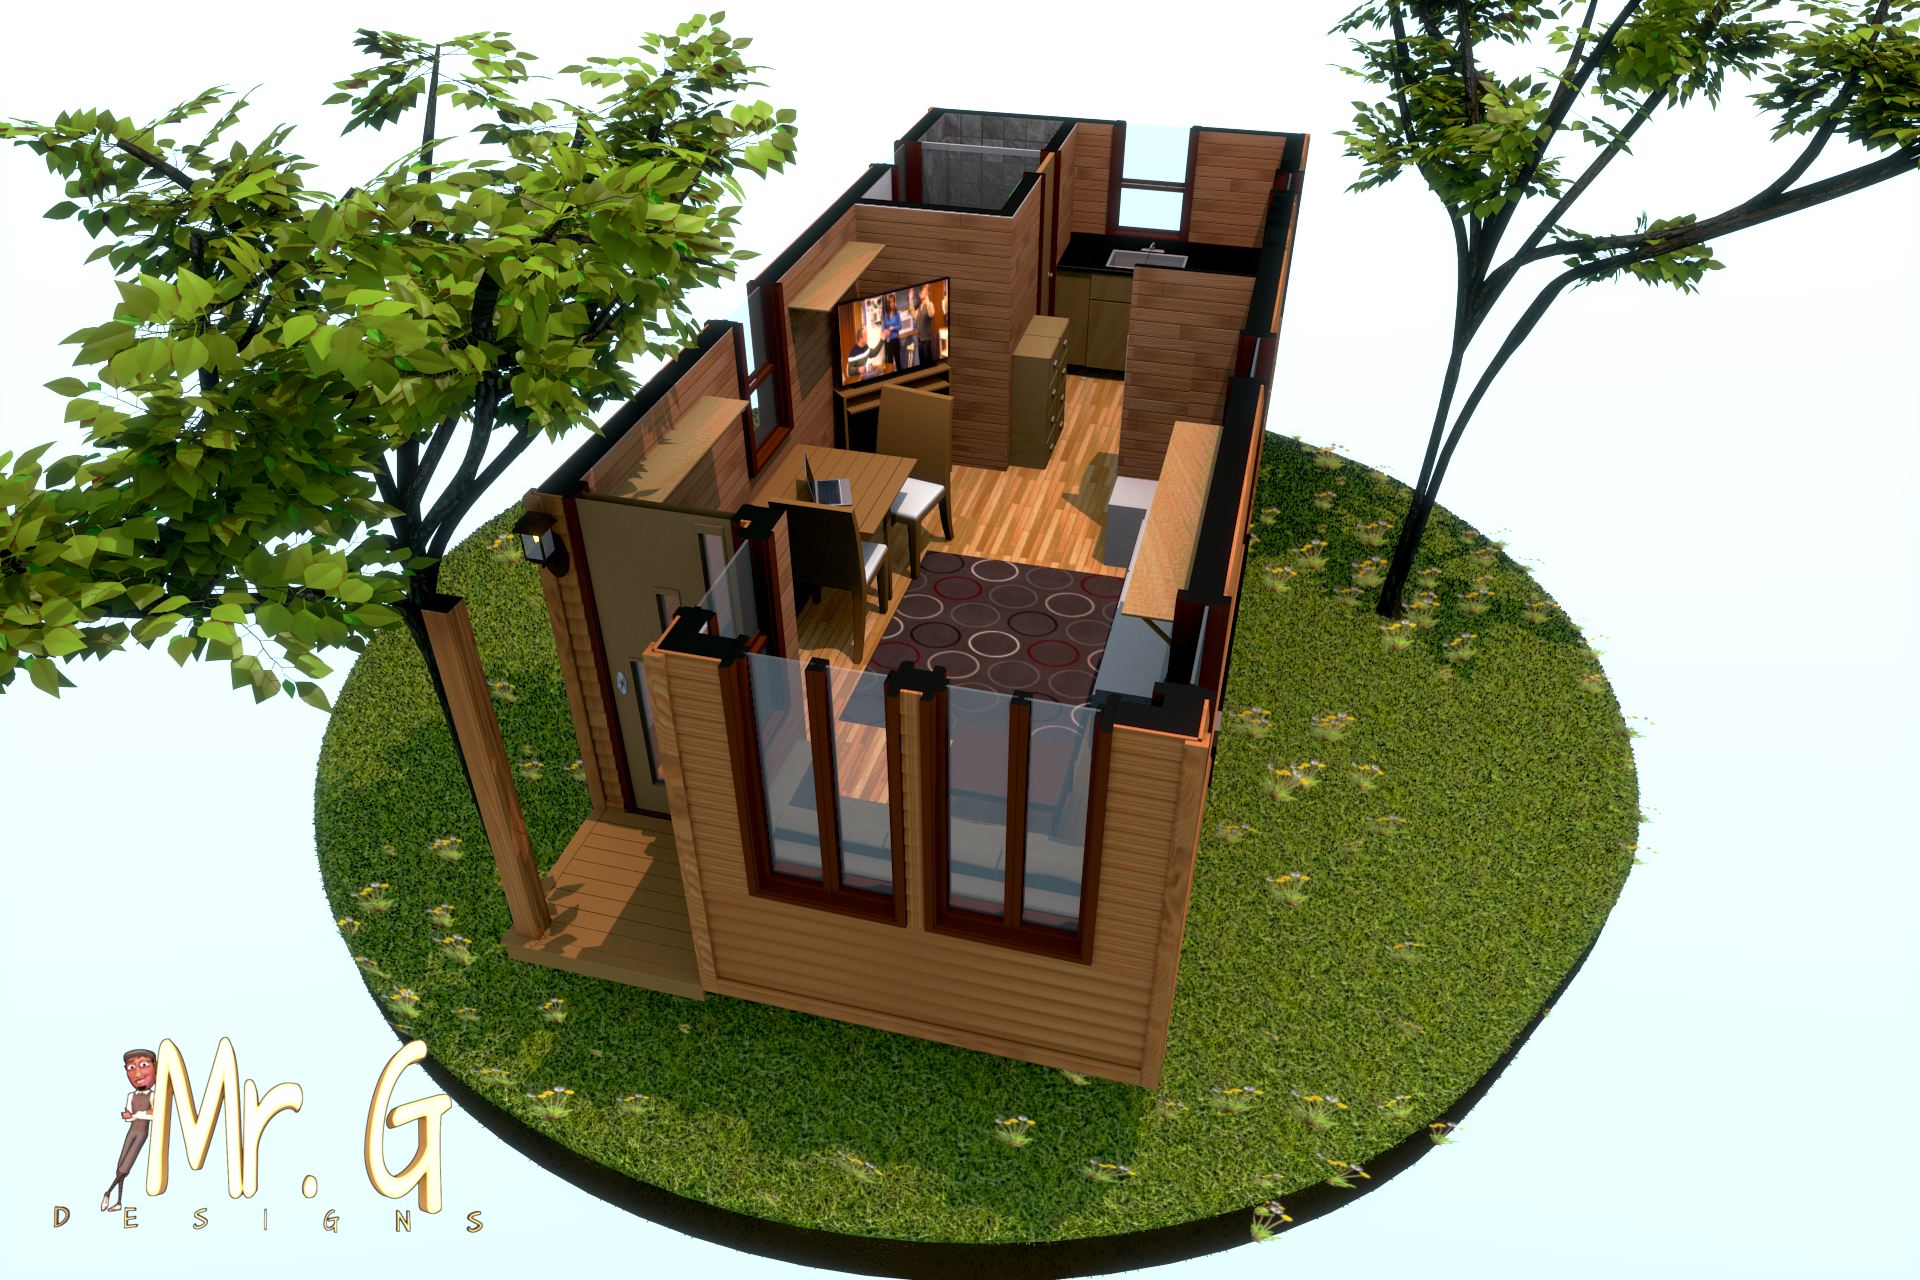 Mr g designs mr g for Small house design 3d